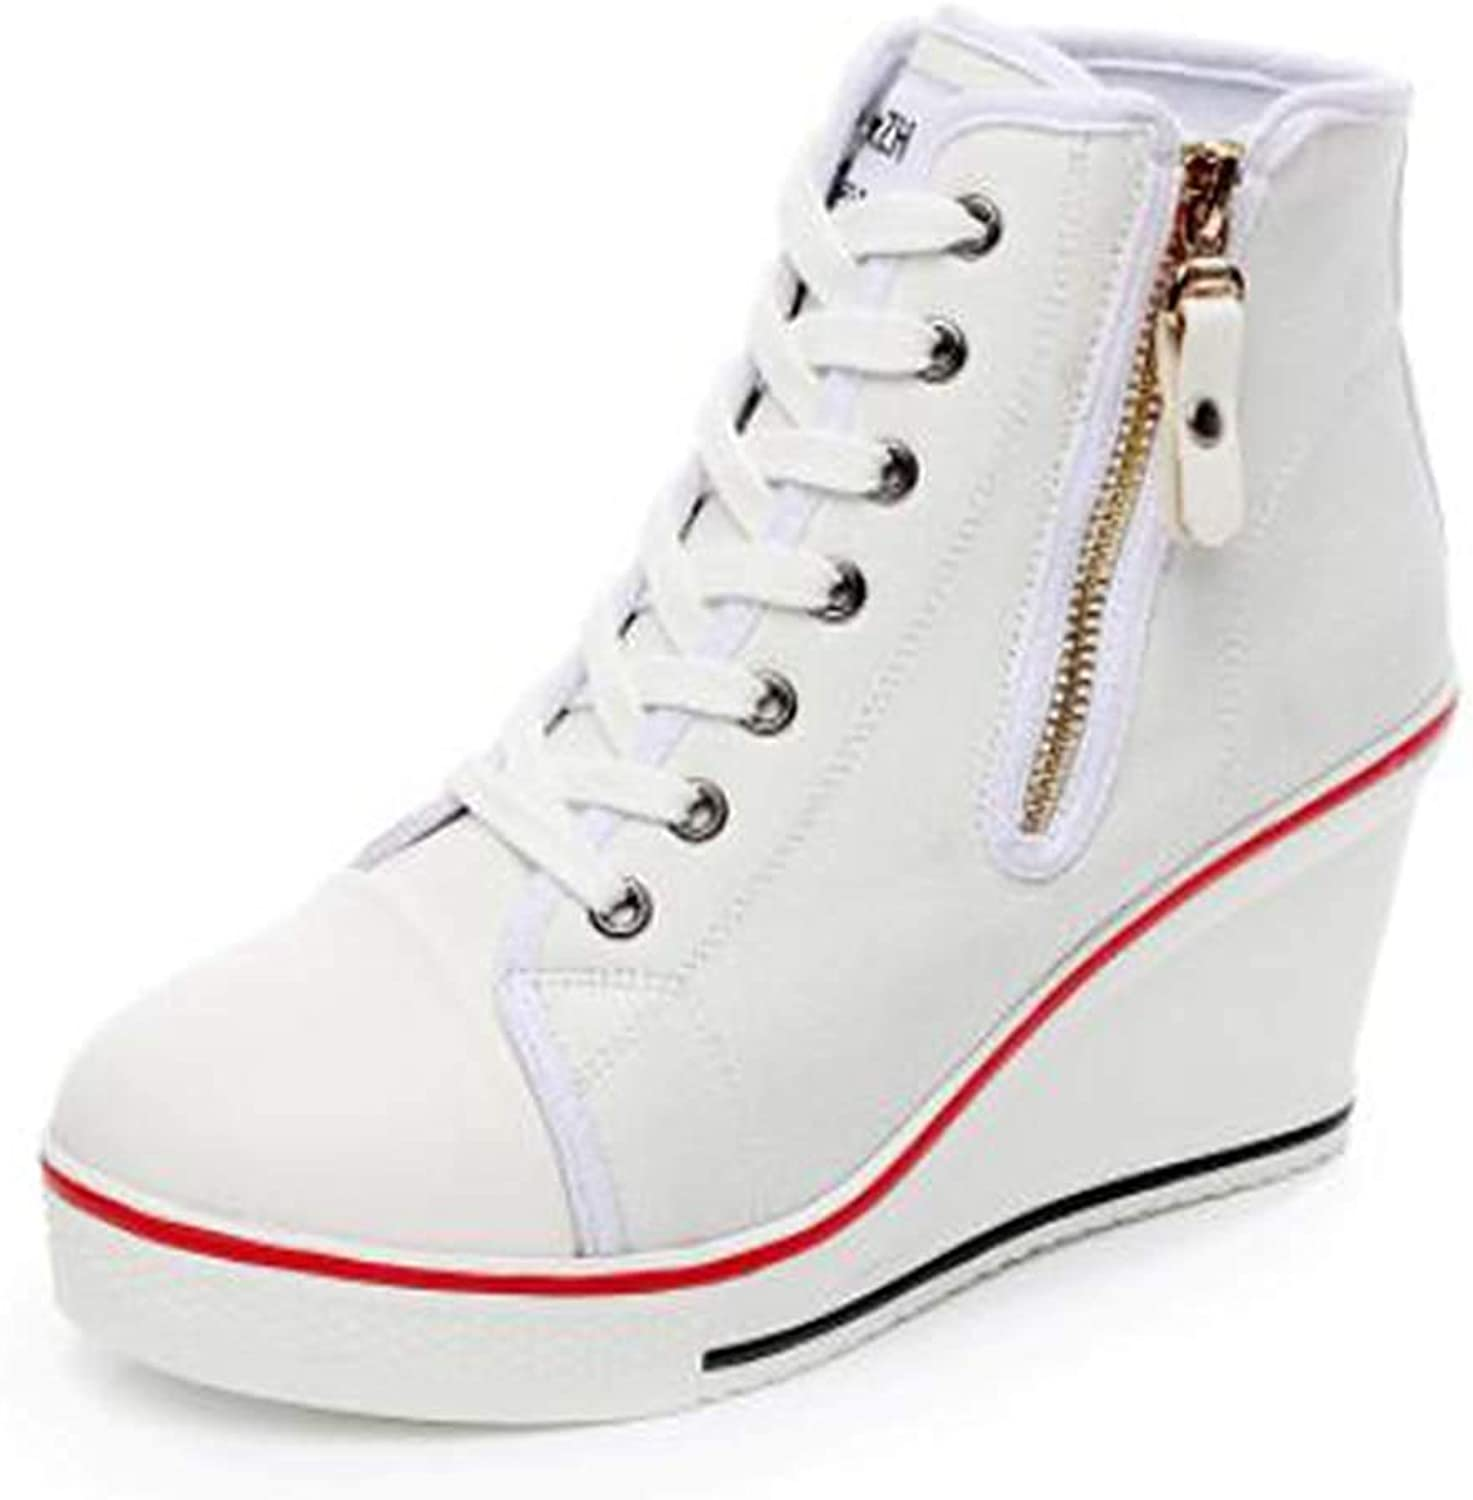 Women High-Top Wedge Sneakers Platform Lace up Lady Sneaker High-Heeled Canvas shoes